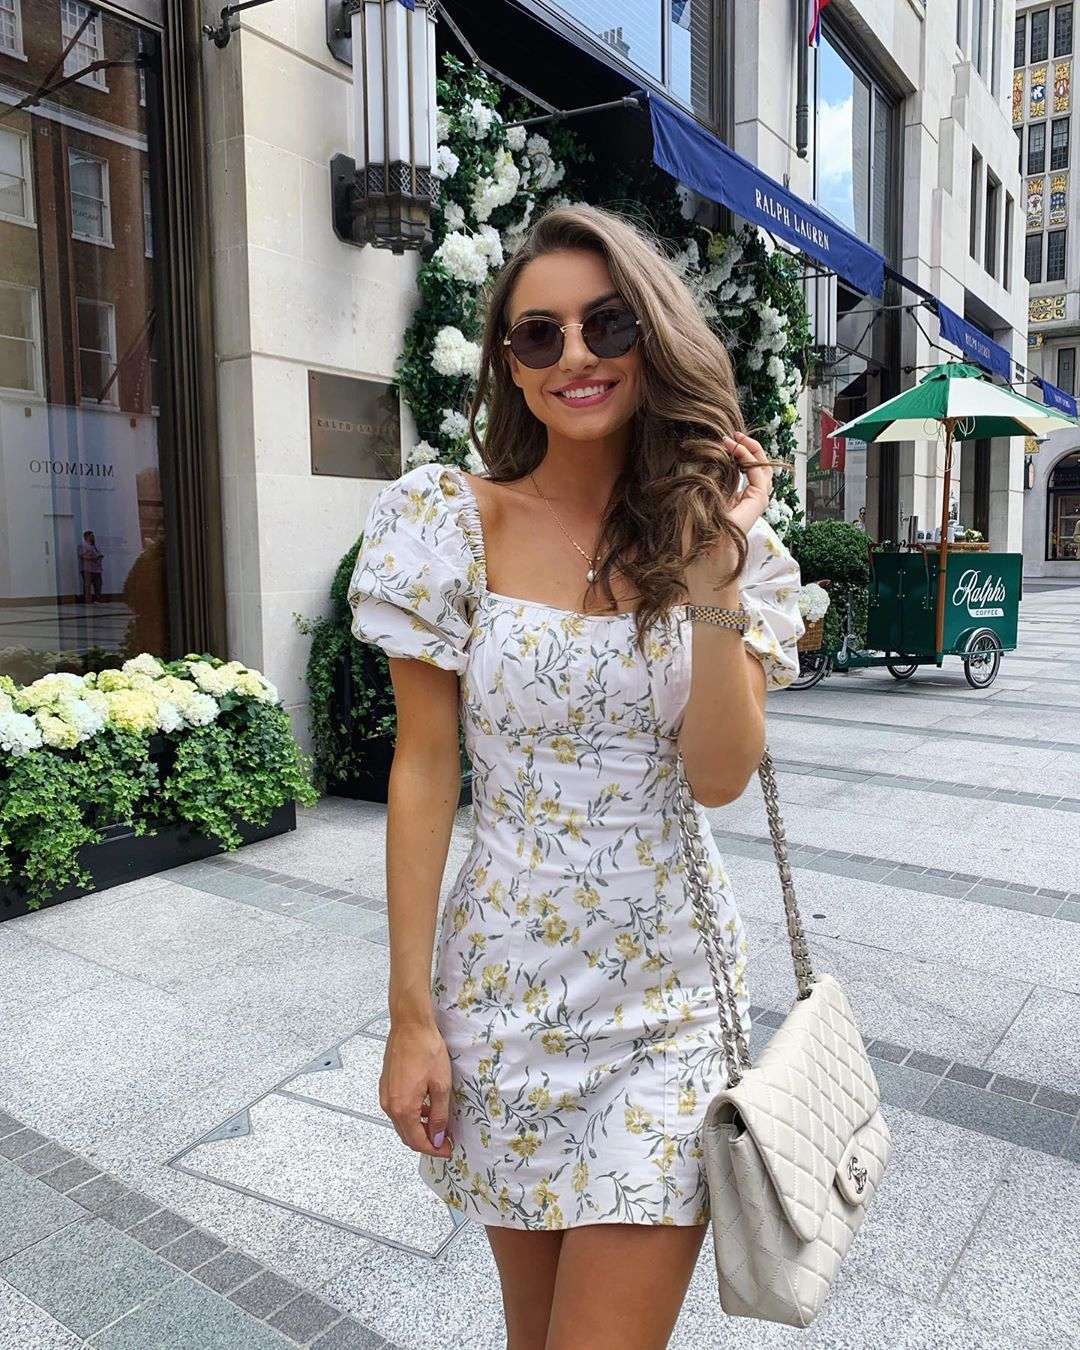 Sophie Knight On Instagram Pretty Little Floral Dresses Outfit Links In Bio Floral Dress Outfits Fashion Girly Outfits [ 1350 x 1080 Pixel ]